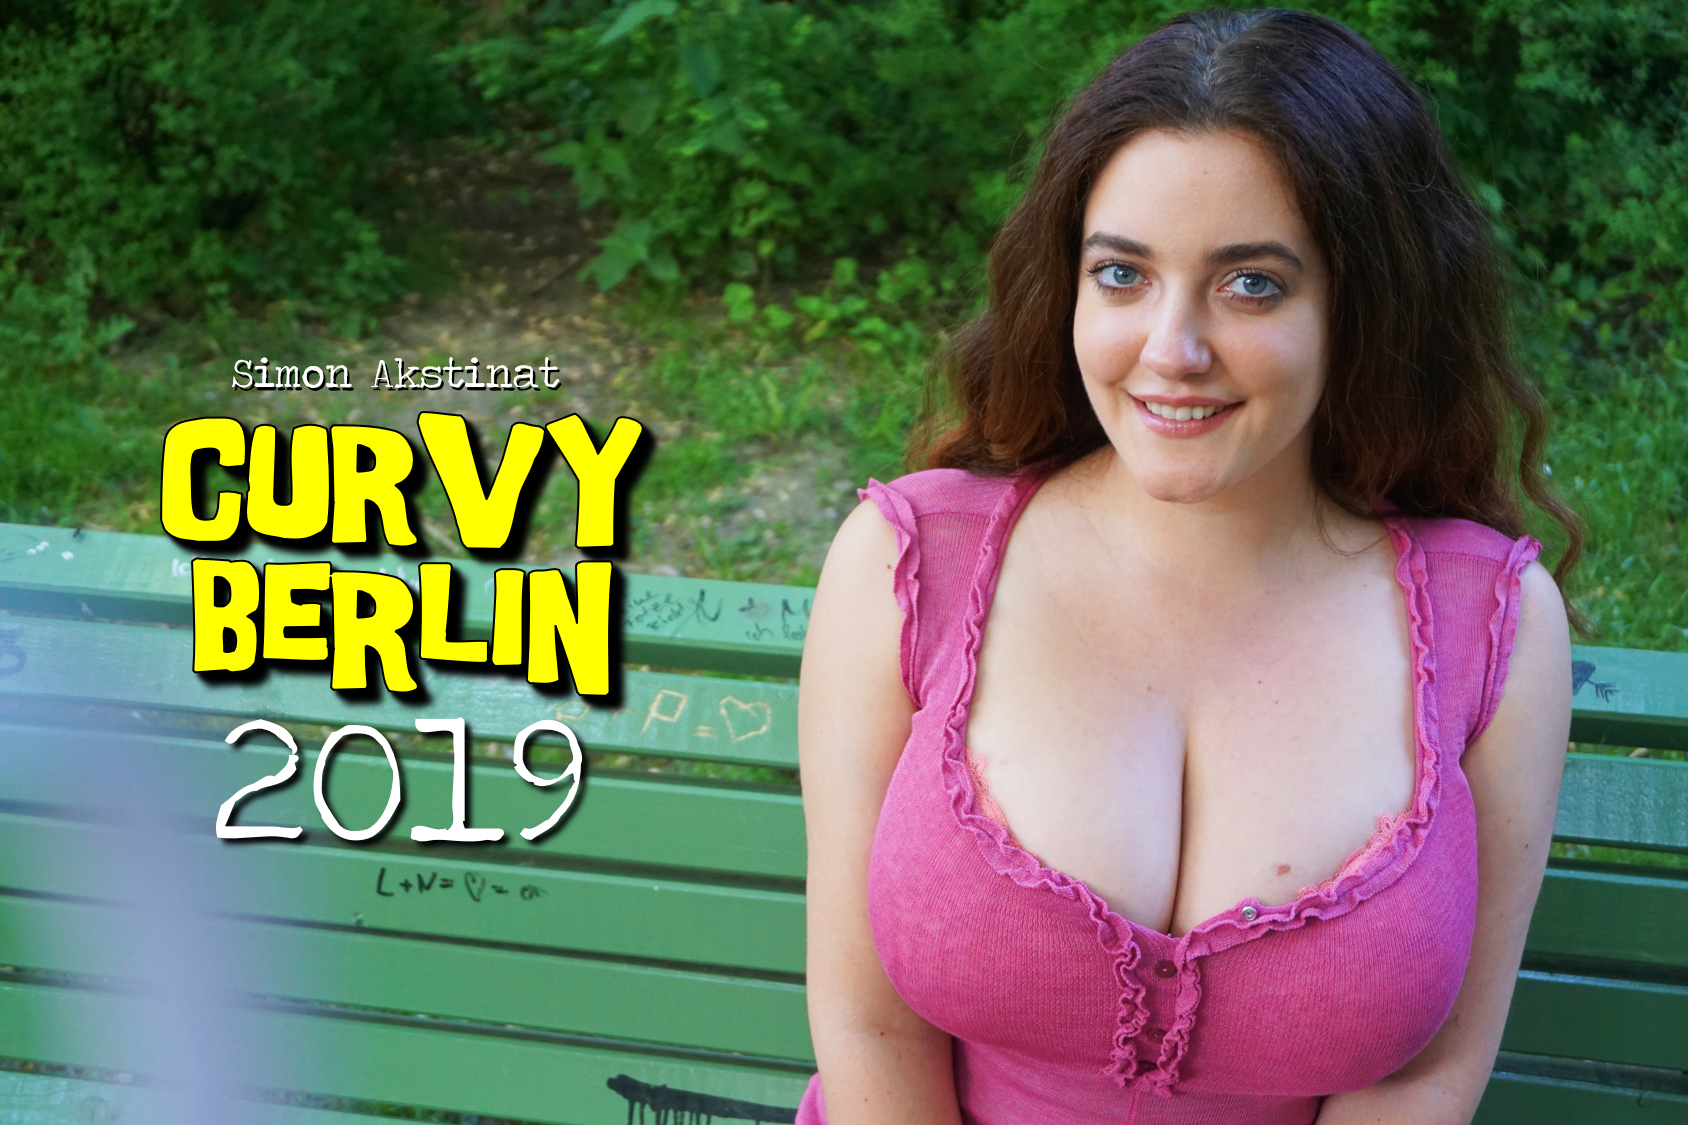 Huge Boobs Alert: Anyone Know About Curvy Berlin